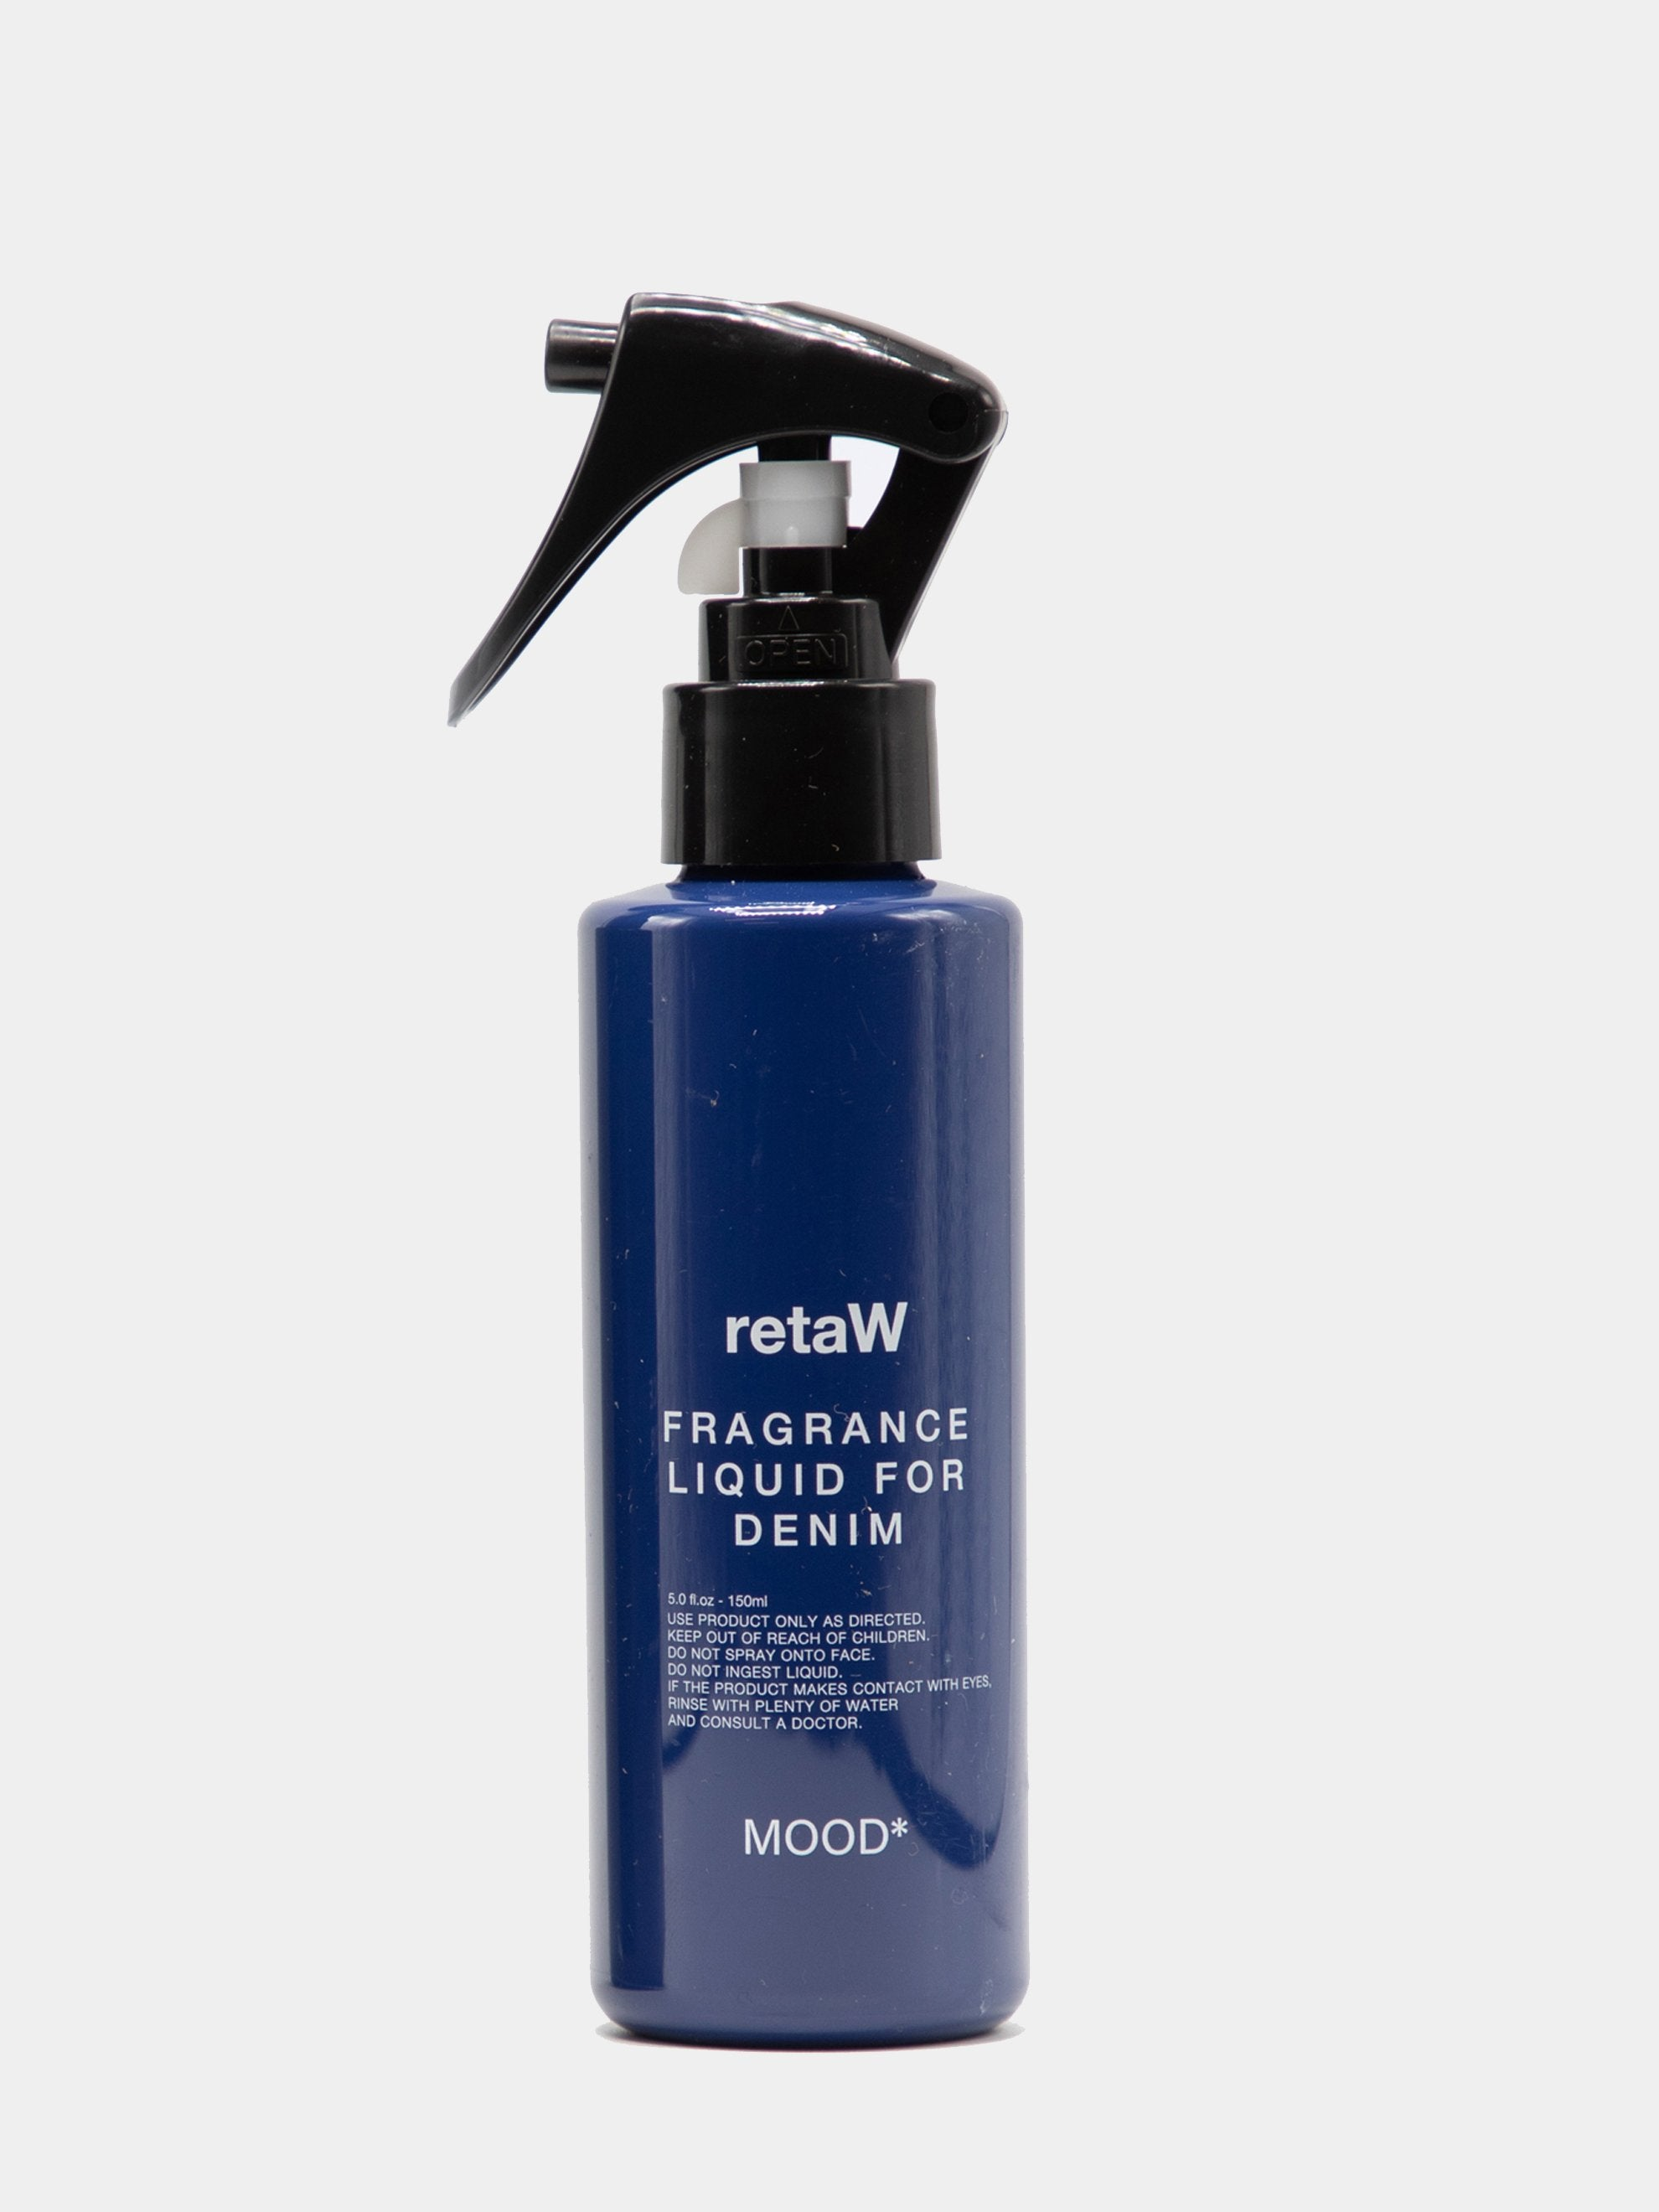 Mood Fragrance Liquid For Denim 1